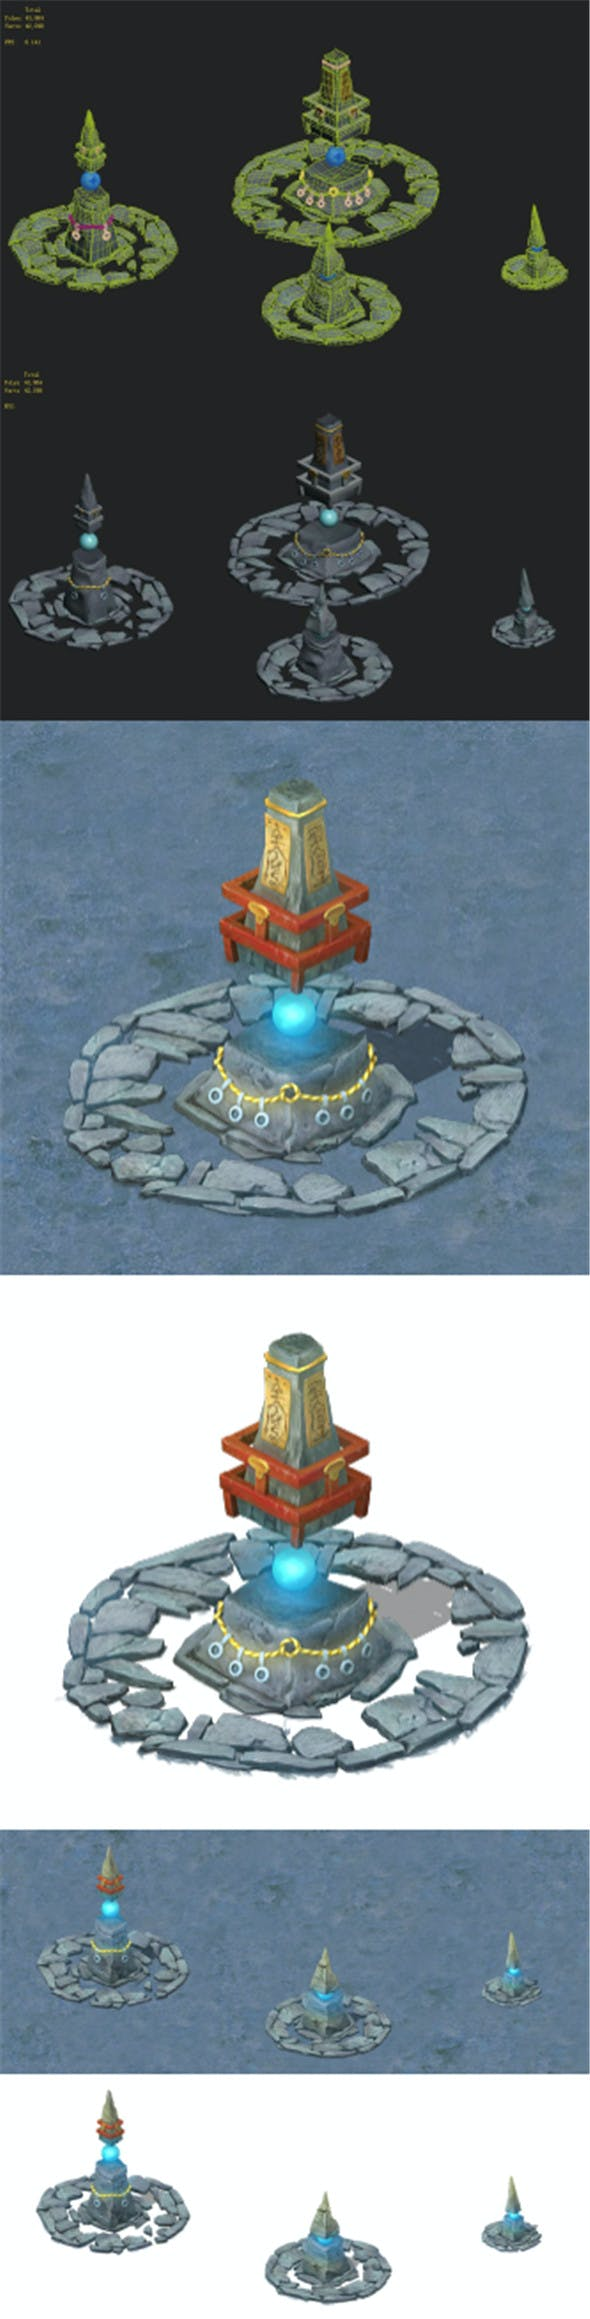 Cartoon version - Crested stone - 3DOcean Item for Sale